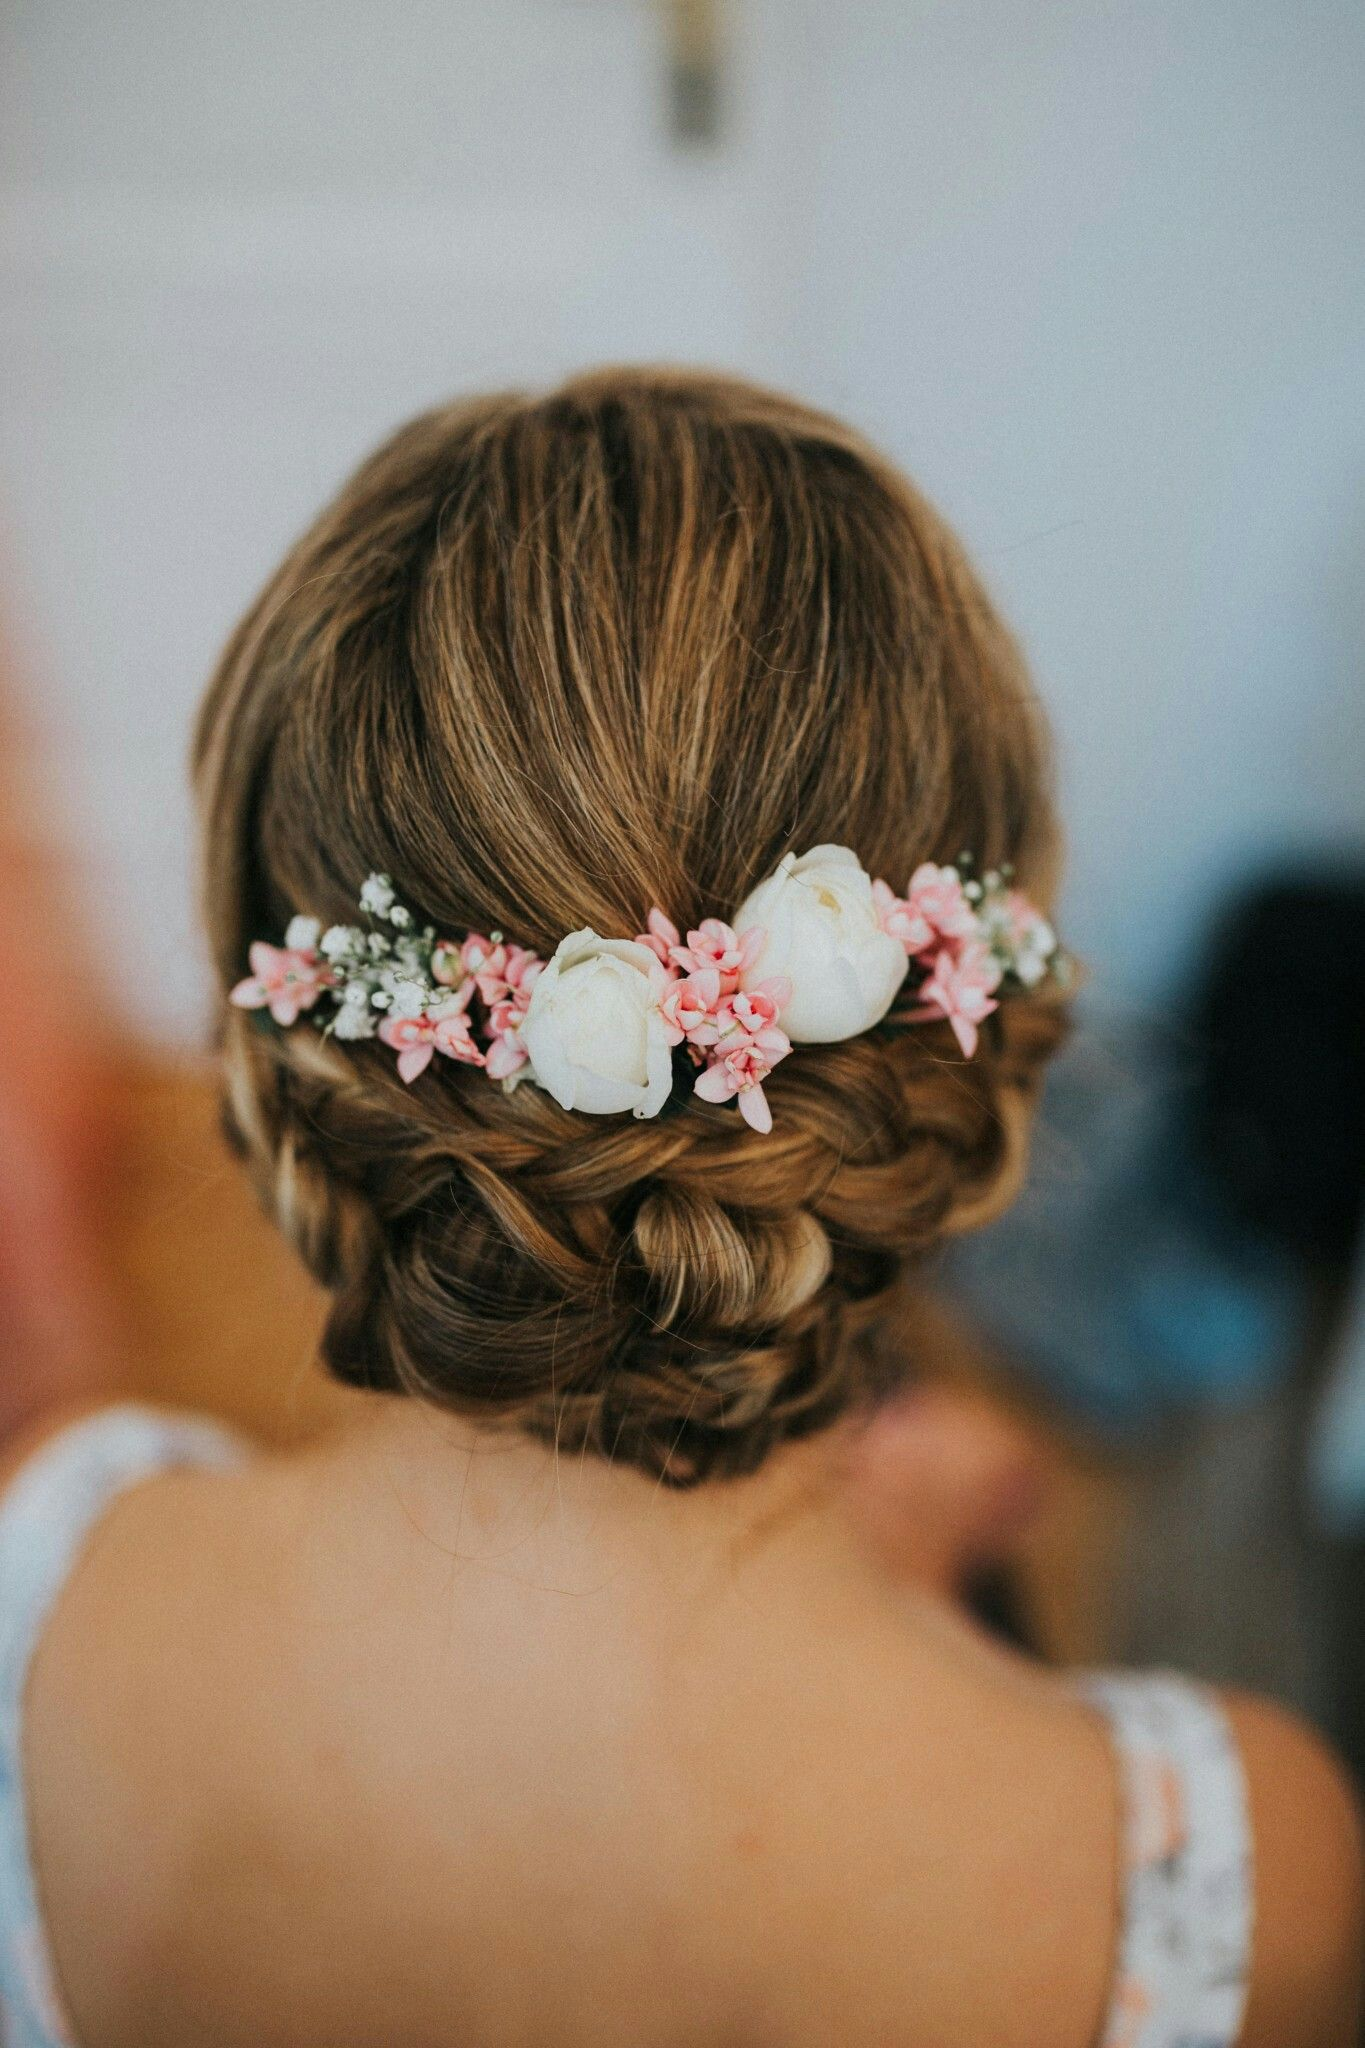 Beautiful hairstyle with bright flowers More inspiration on